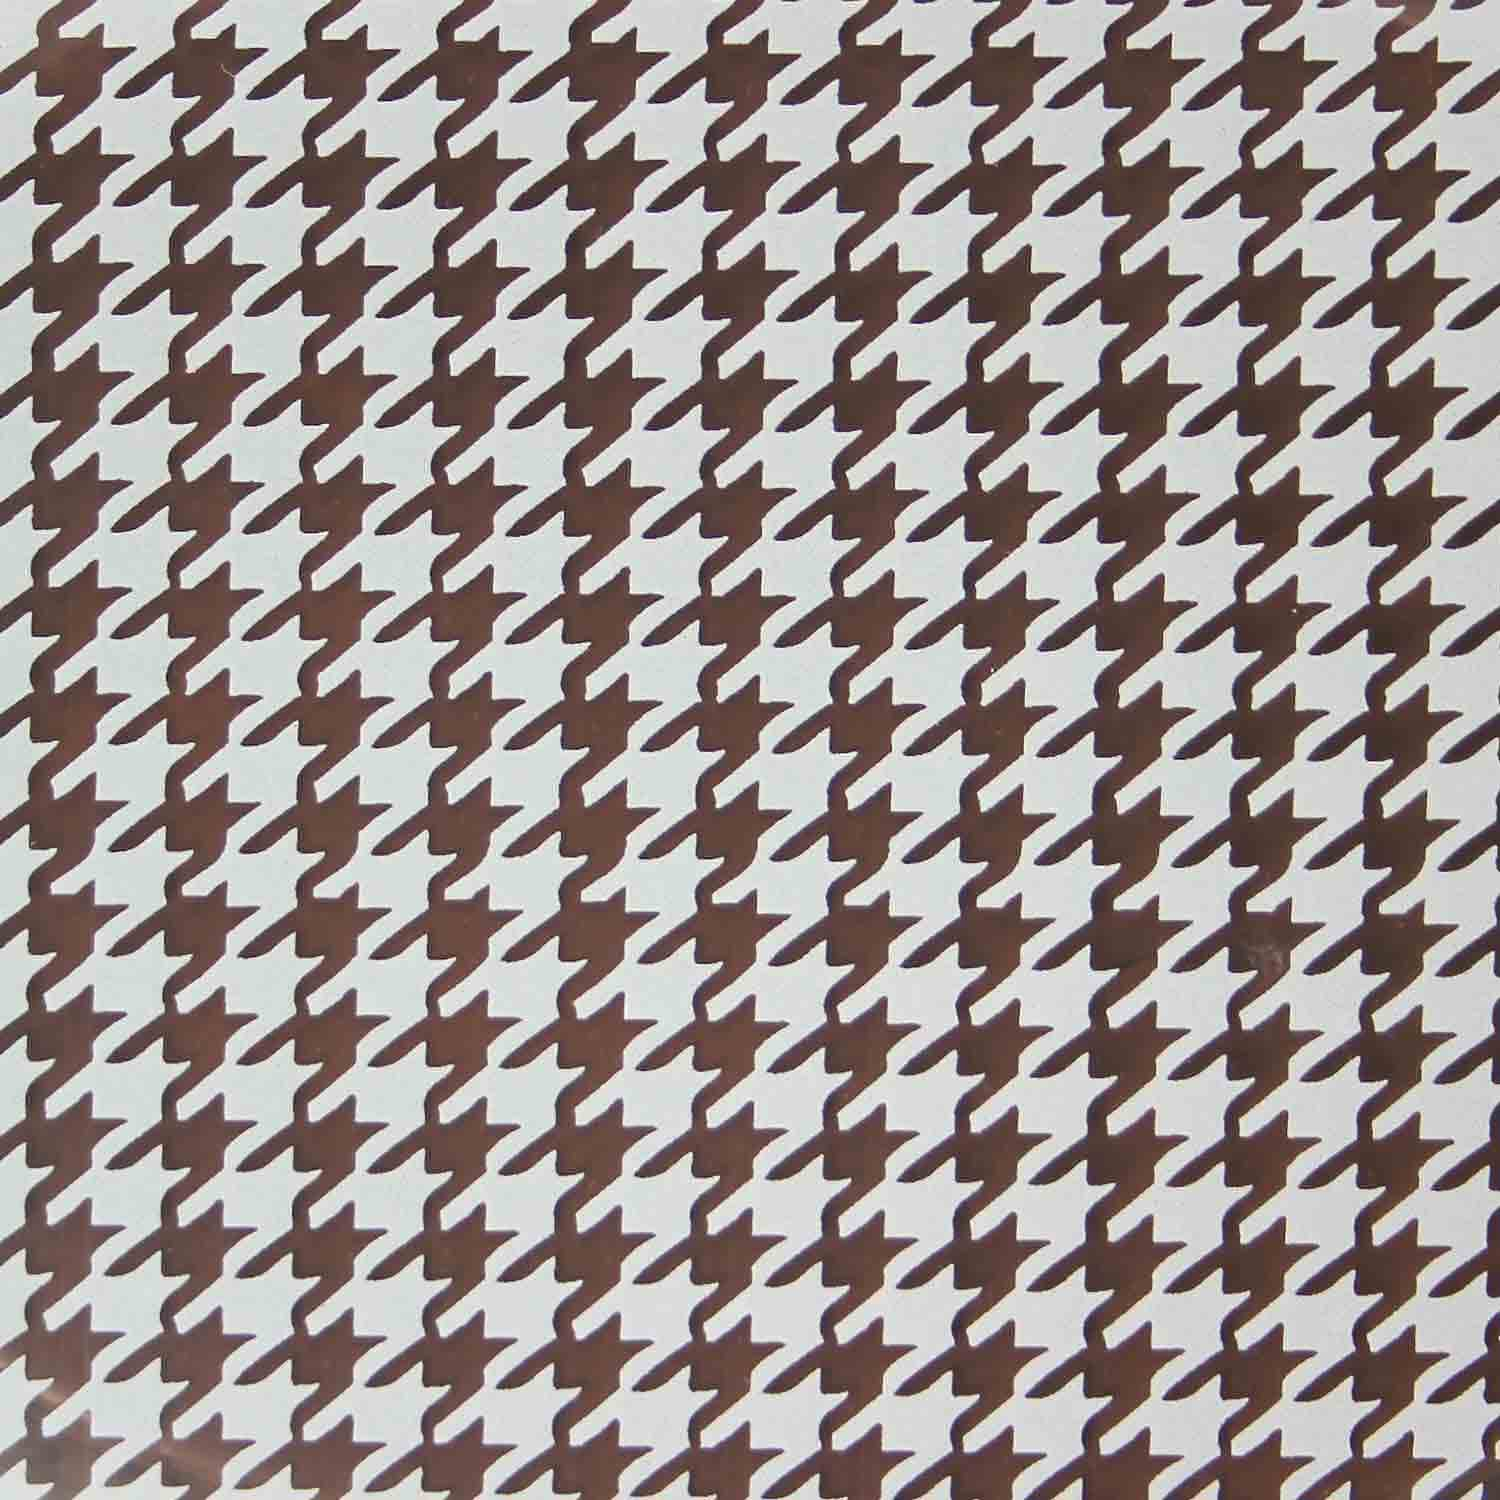 Chocolate Transfer Sheet - White Houndstooth